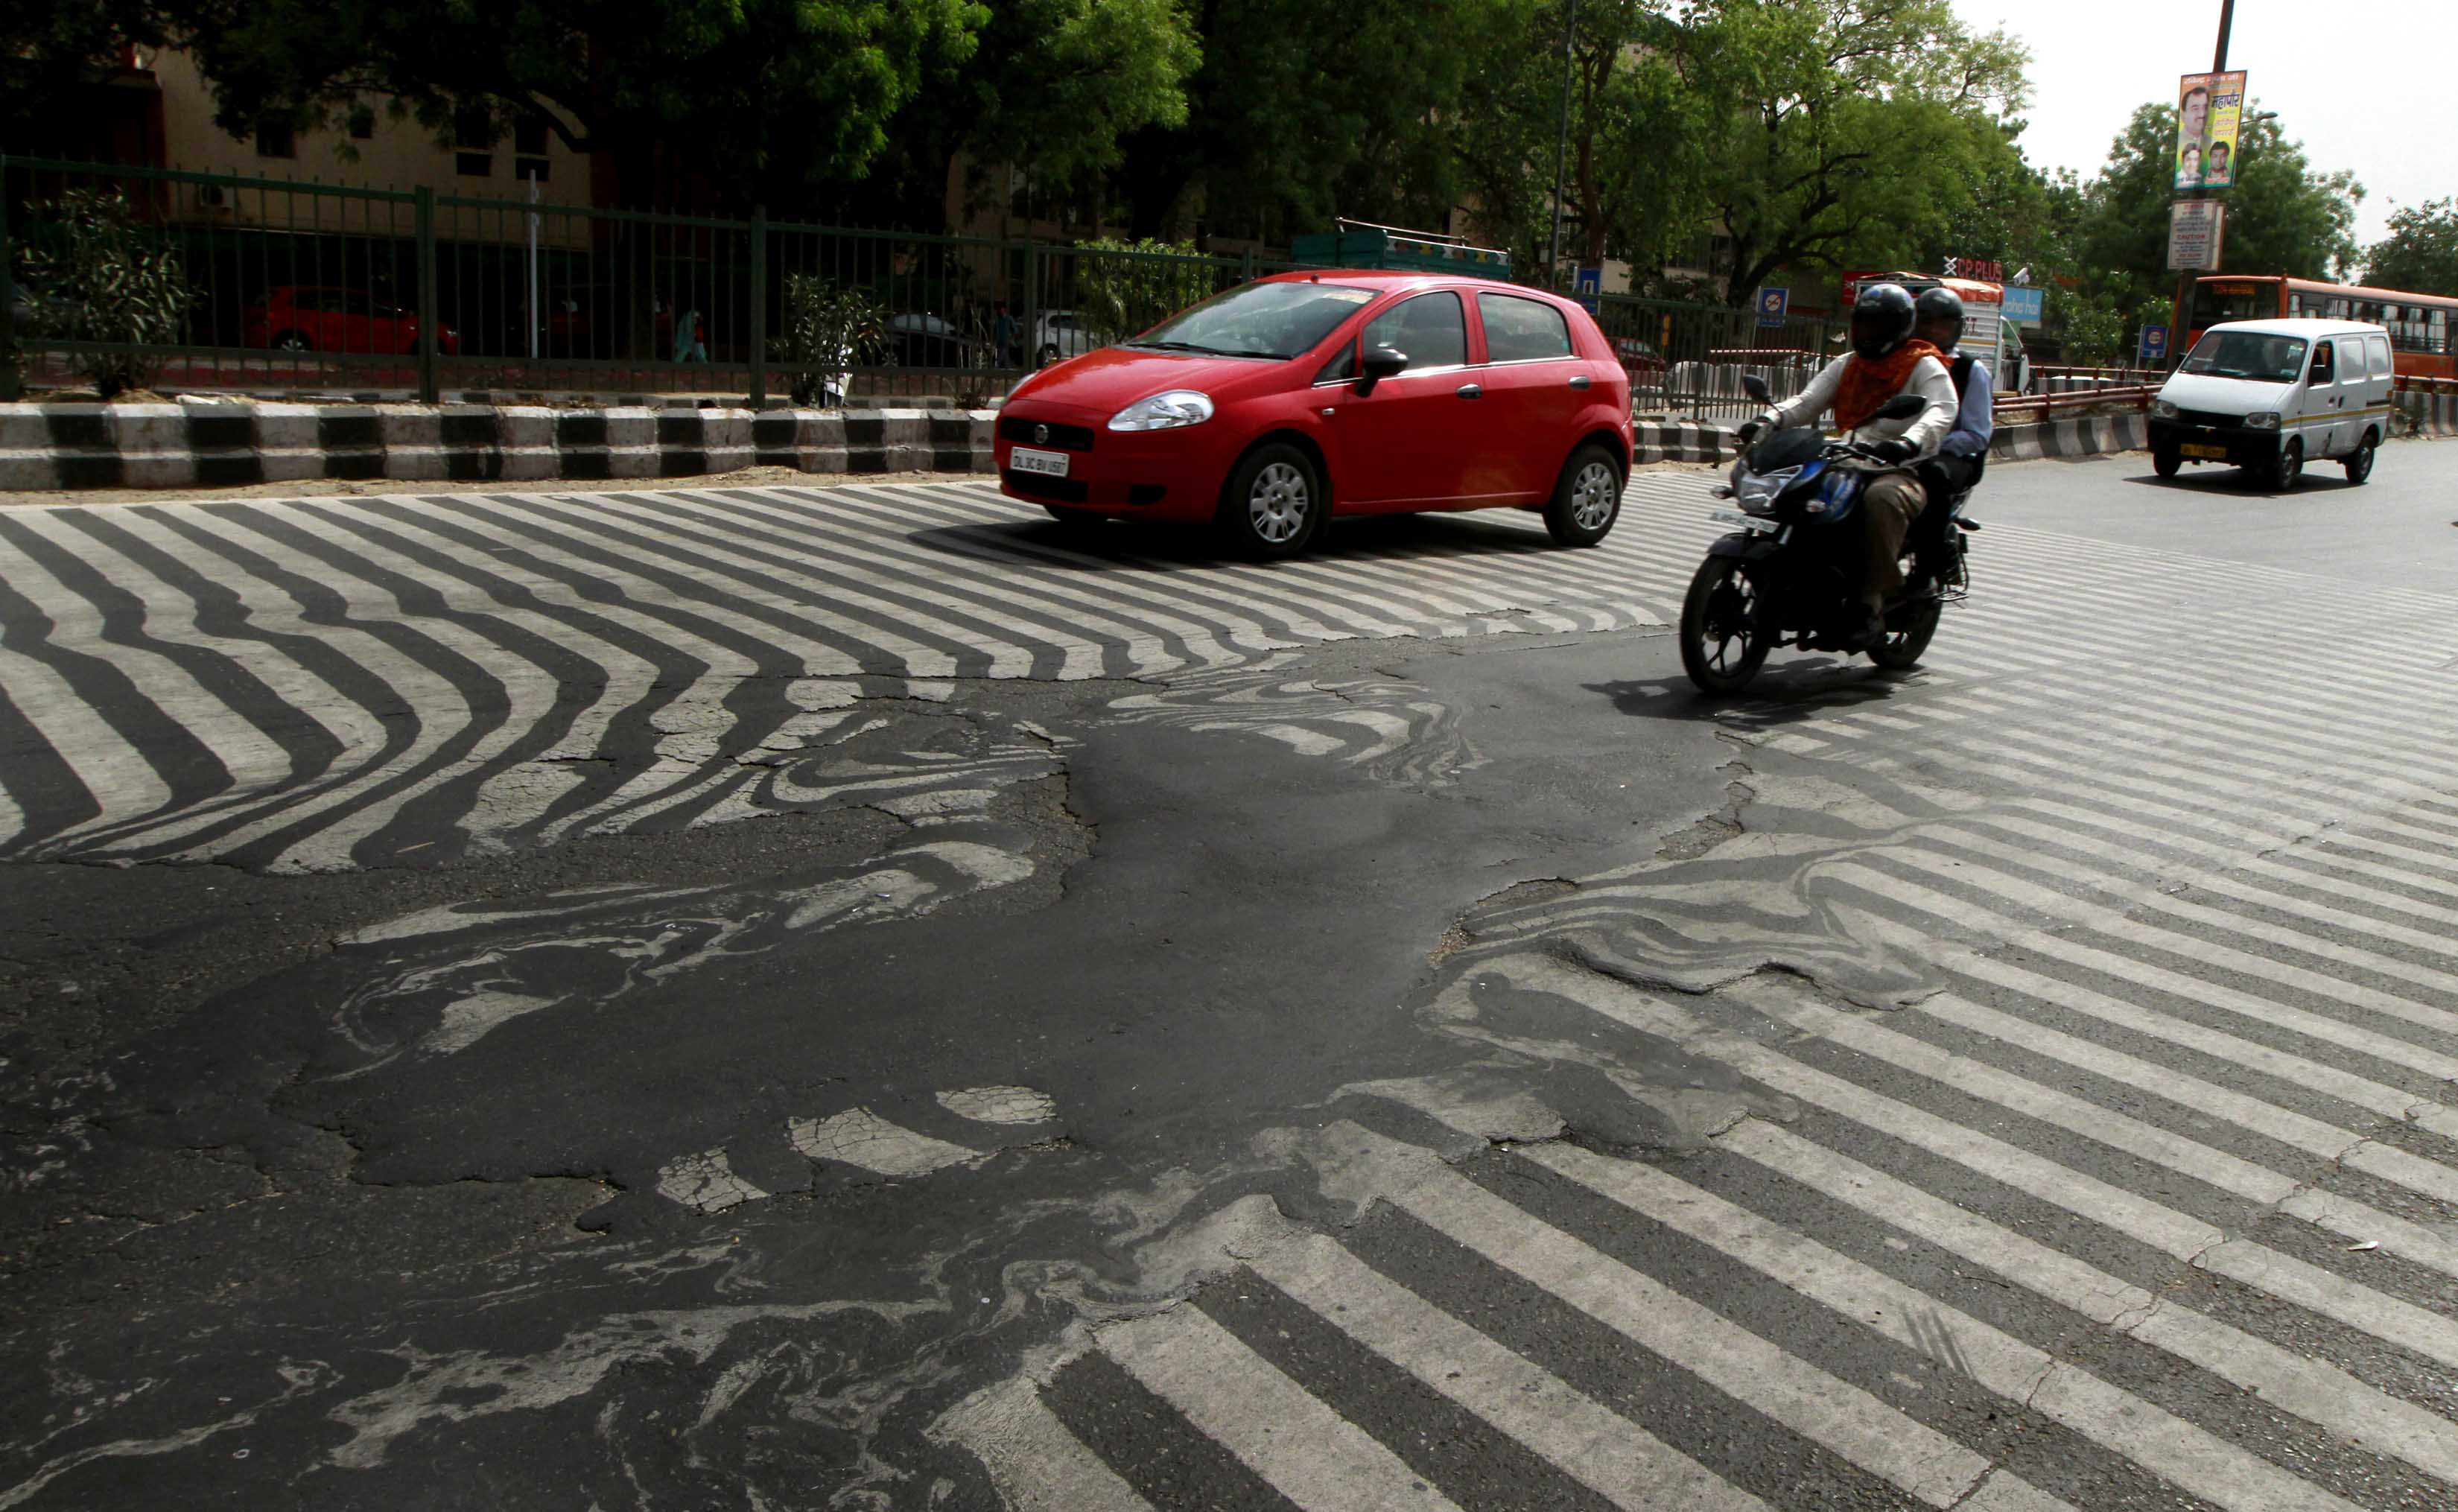 A road melt near Safdarjung Hospital after the Temperature rise to 113 degrees. Photo by Sanjeev Verma/Hindustan Times via Getty Images